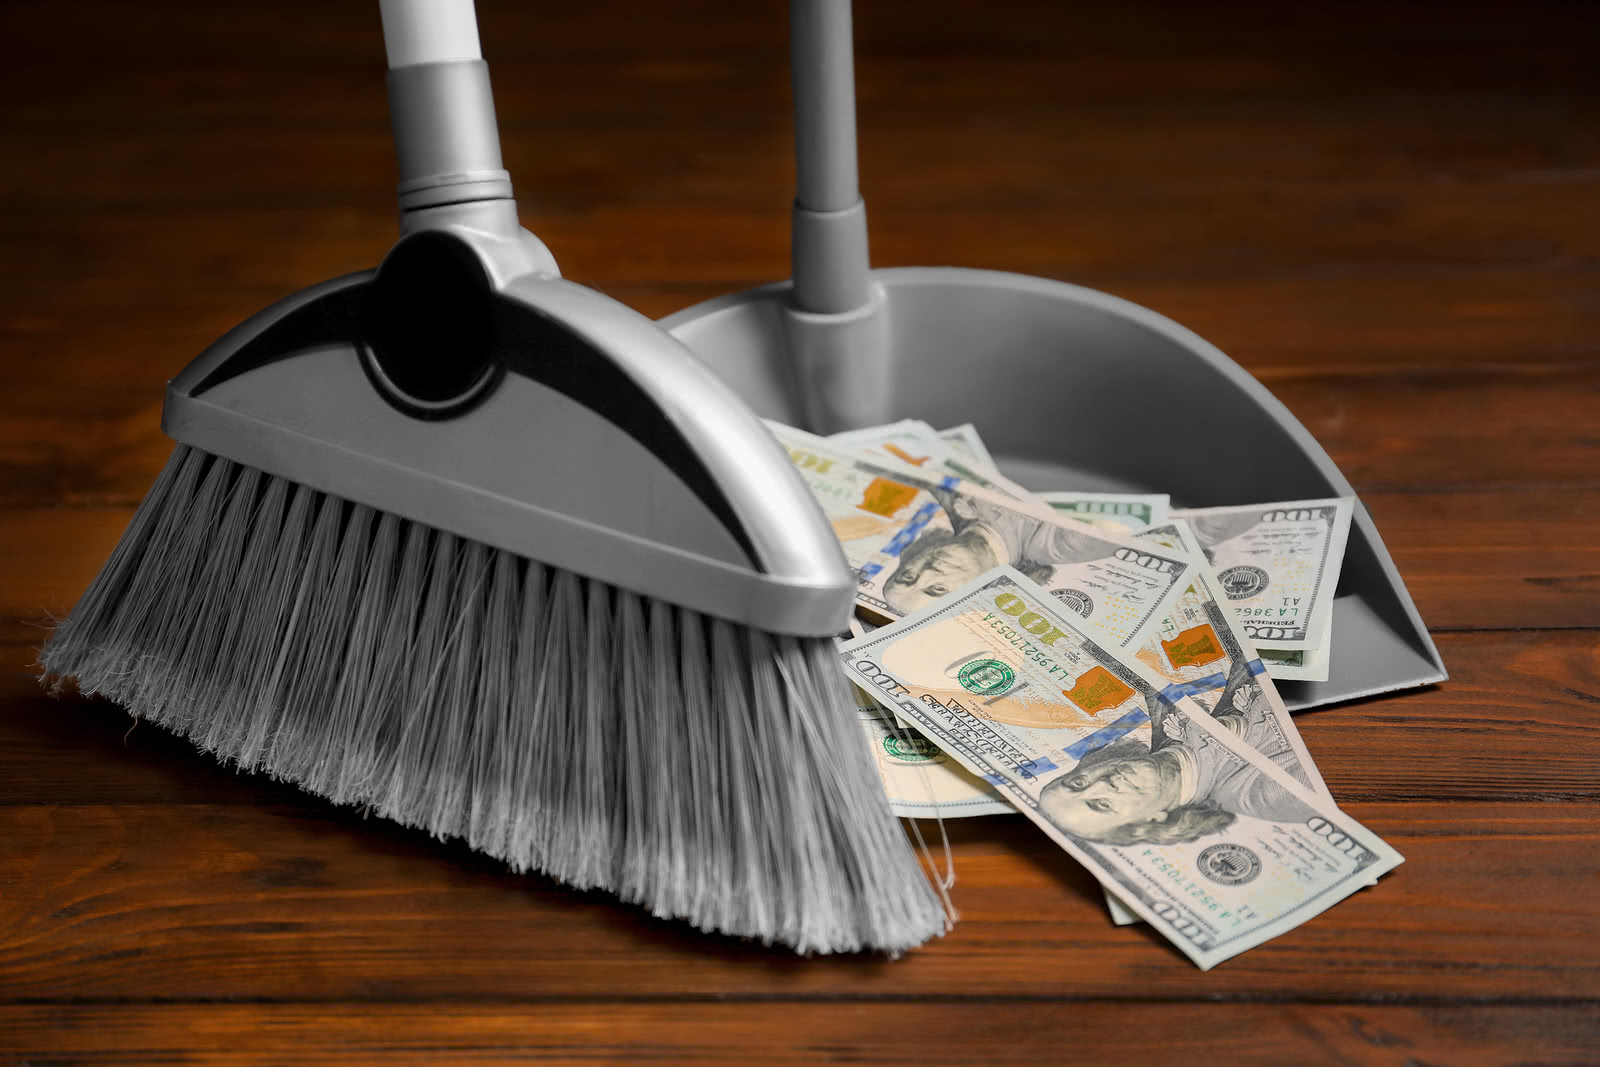 Sweeping dollars into dustpan